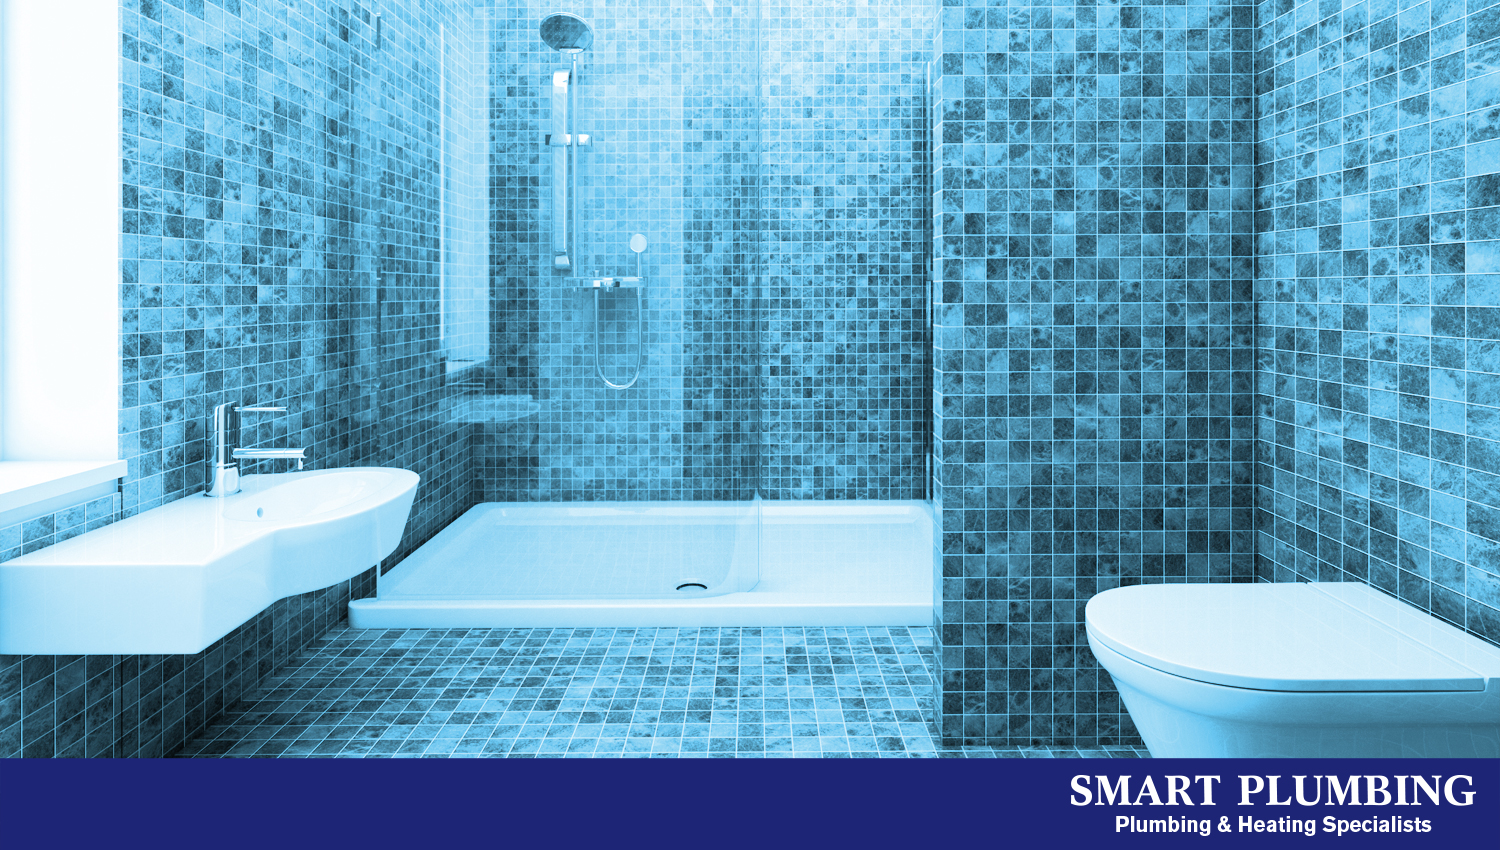 Smart Plumbing - Impeccably Finished Bathrooms